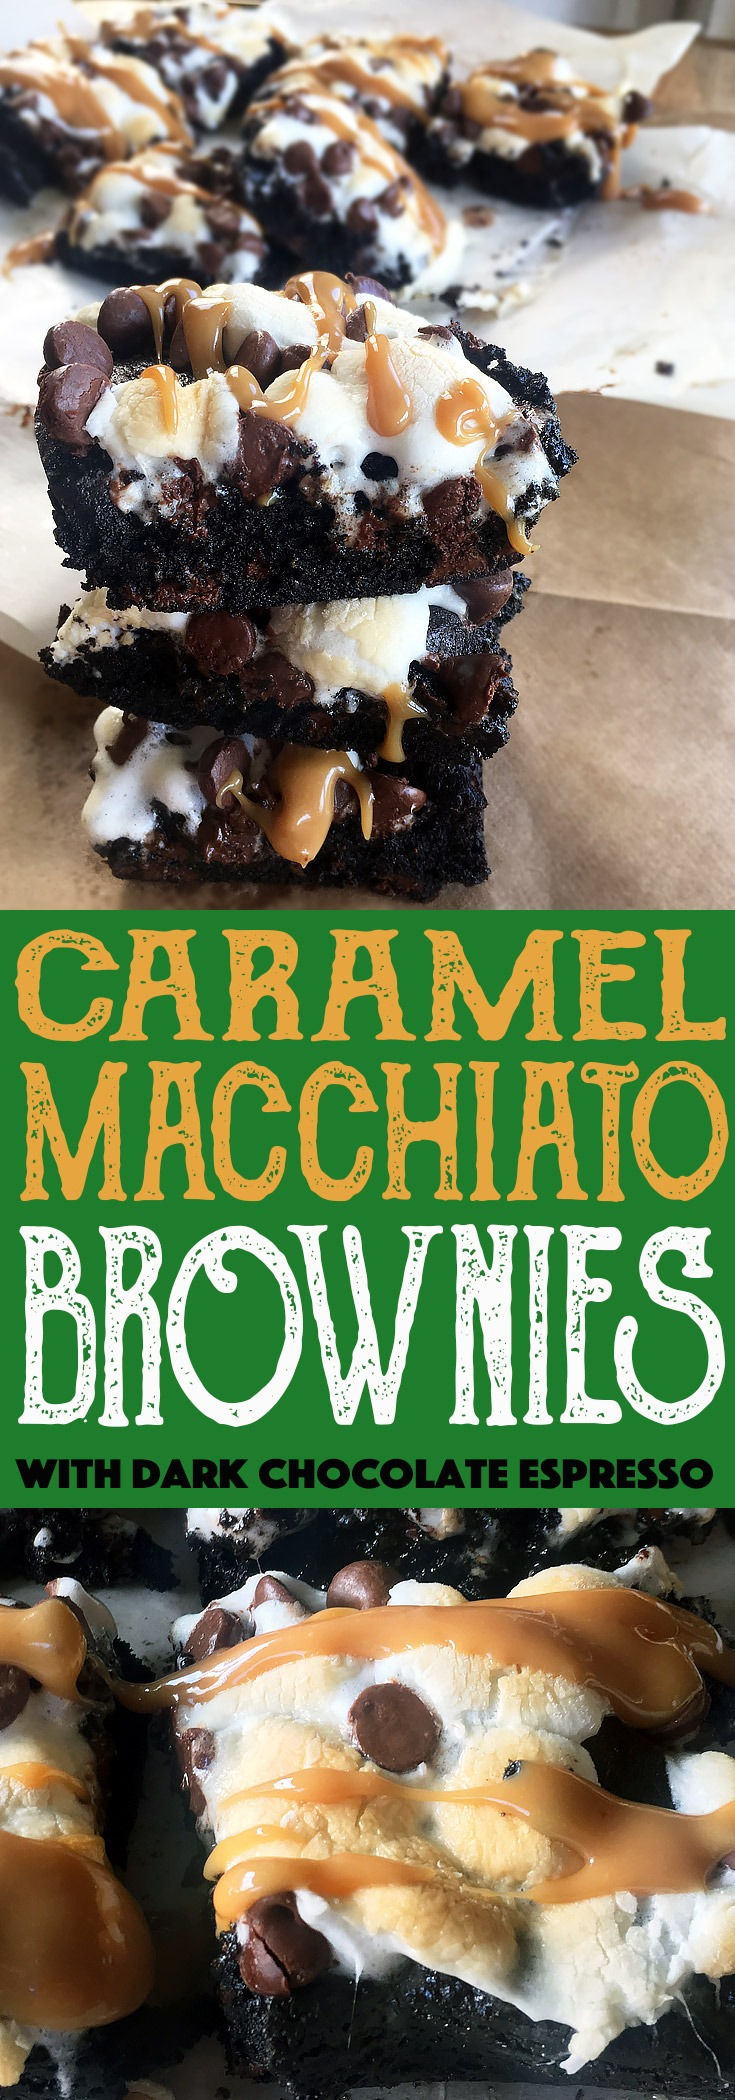 Caramel Macchiato Brownies with Dark Chocolate Espresso and caramel sauce.